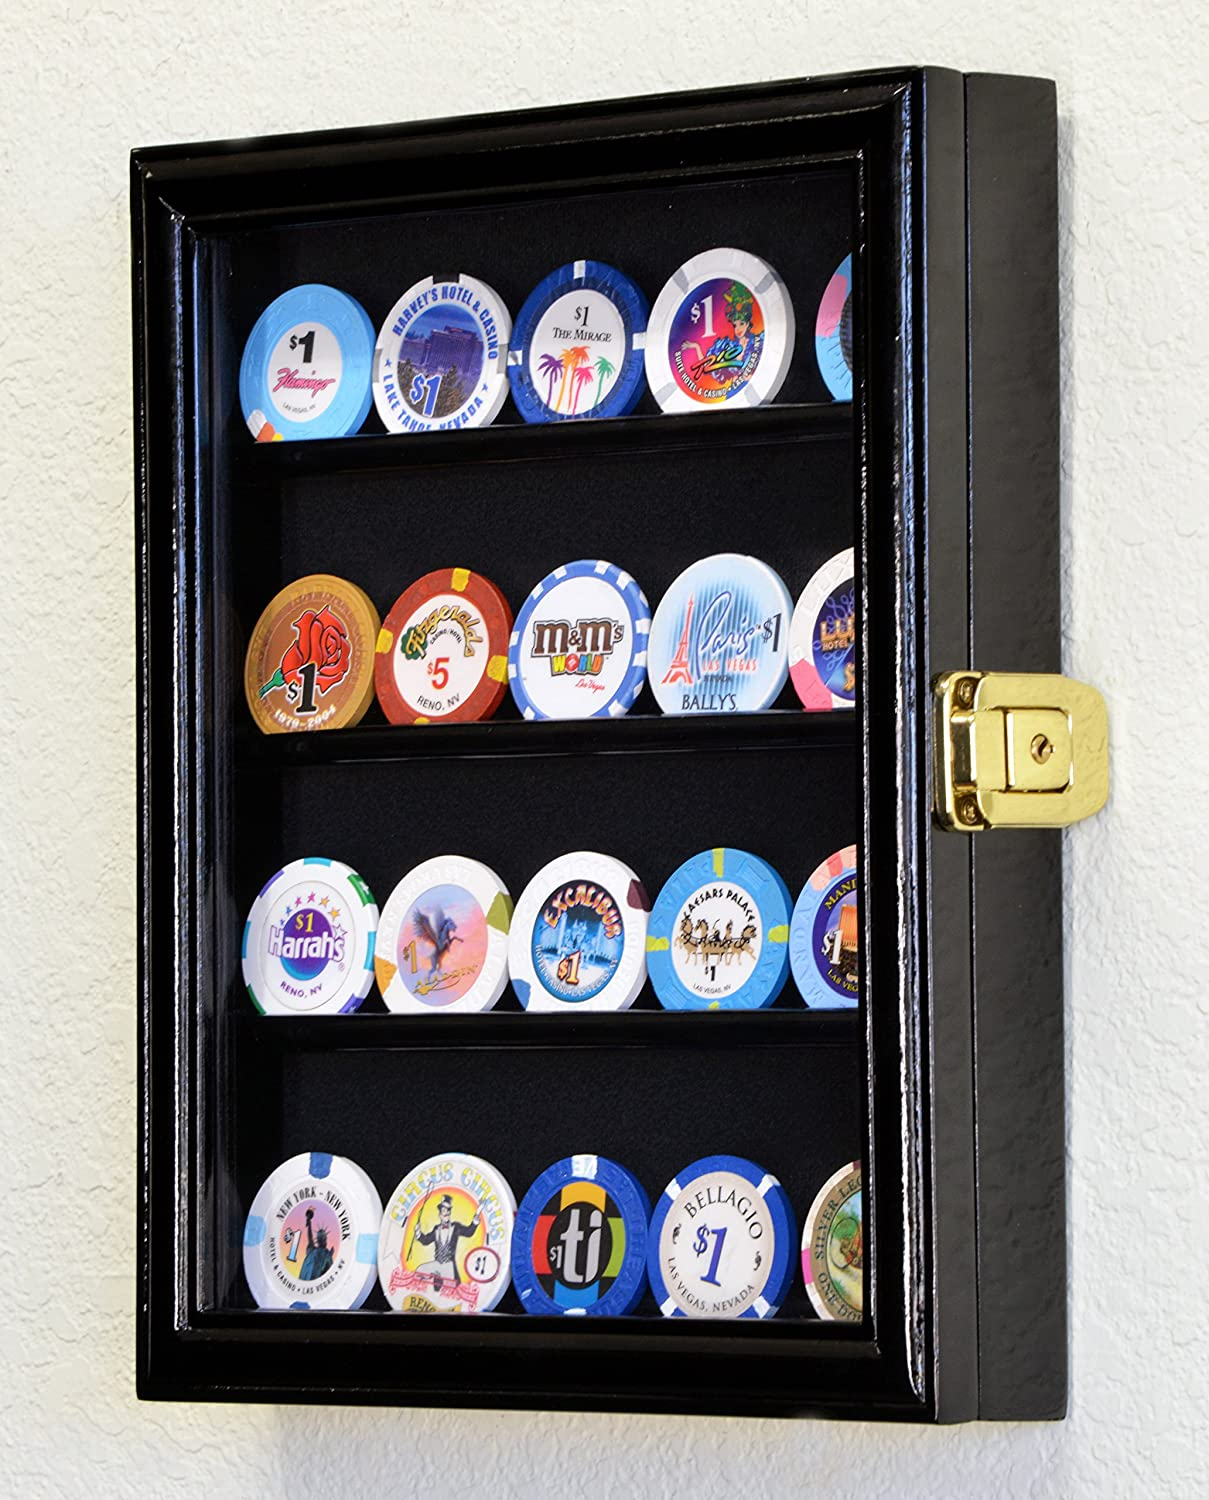 XS Military Challenge Coin Display Case Cabinet Holder Rack Box w UV Protection -Black Finish